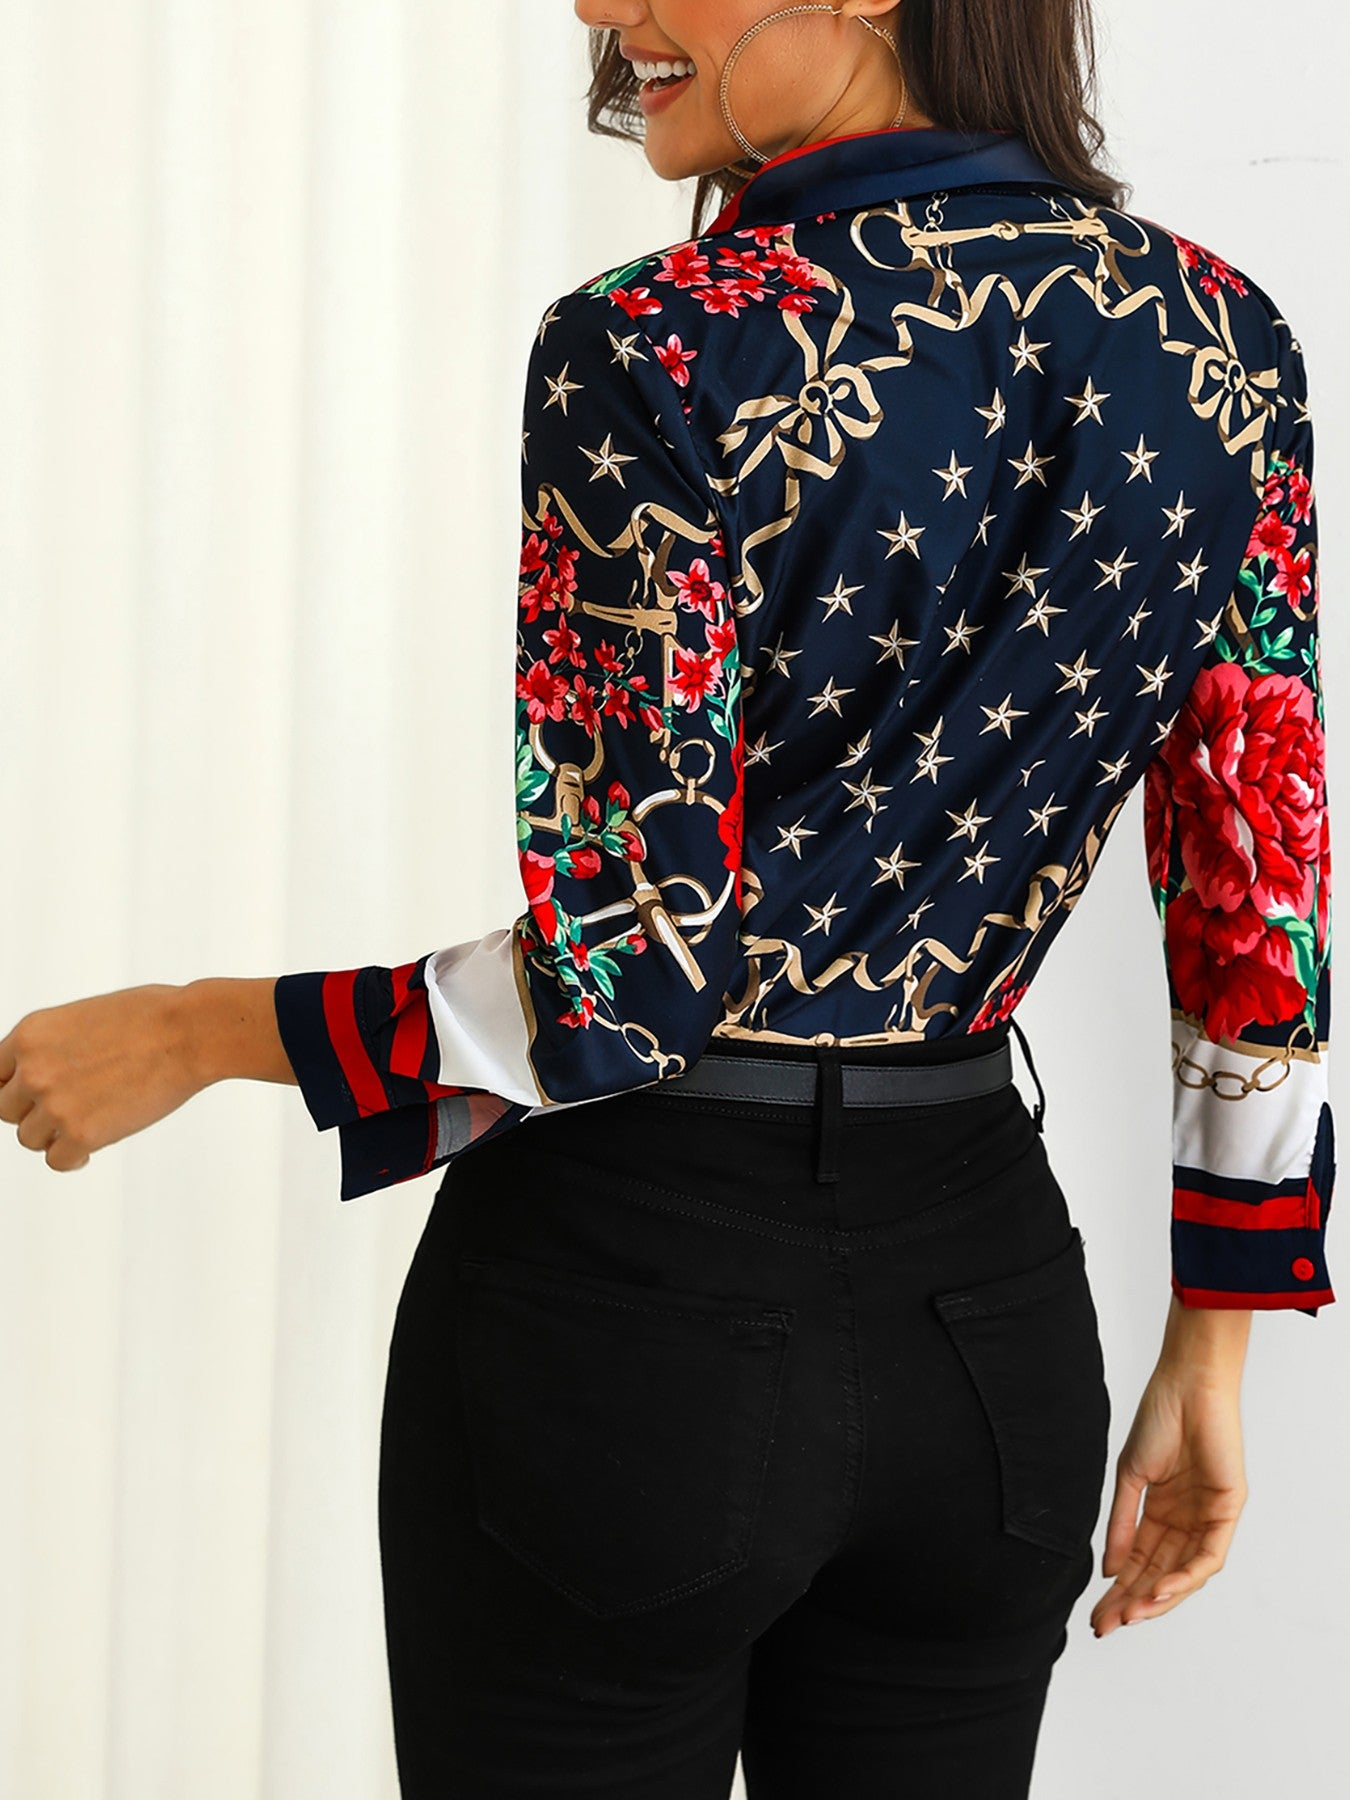 Floral & Chains Print Casual Blouse - DadHats2ow6ix